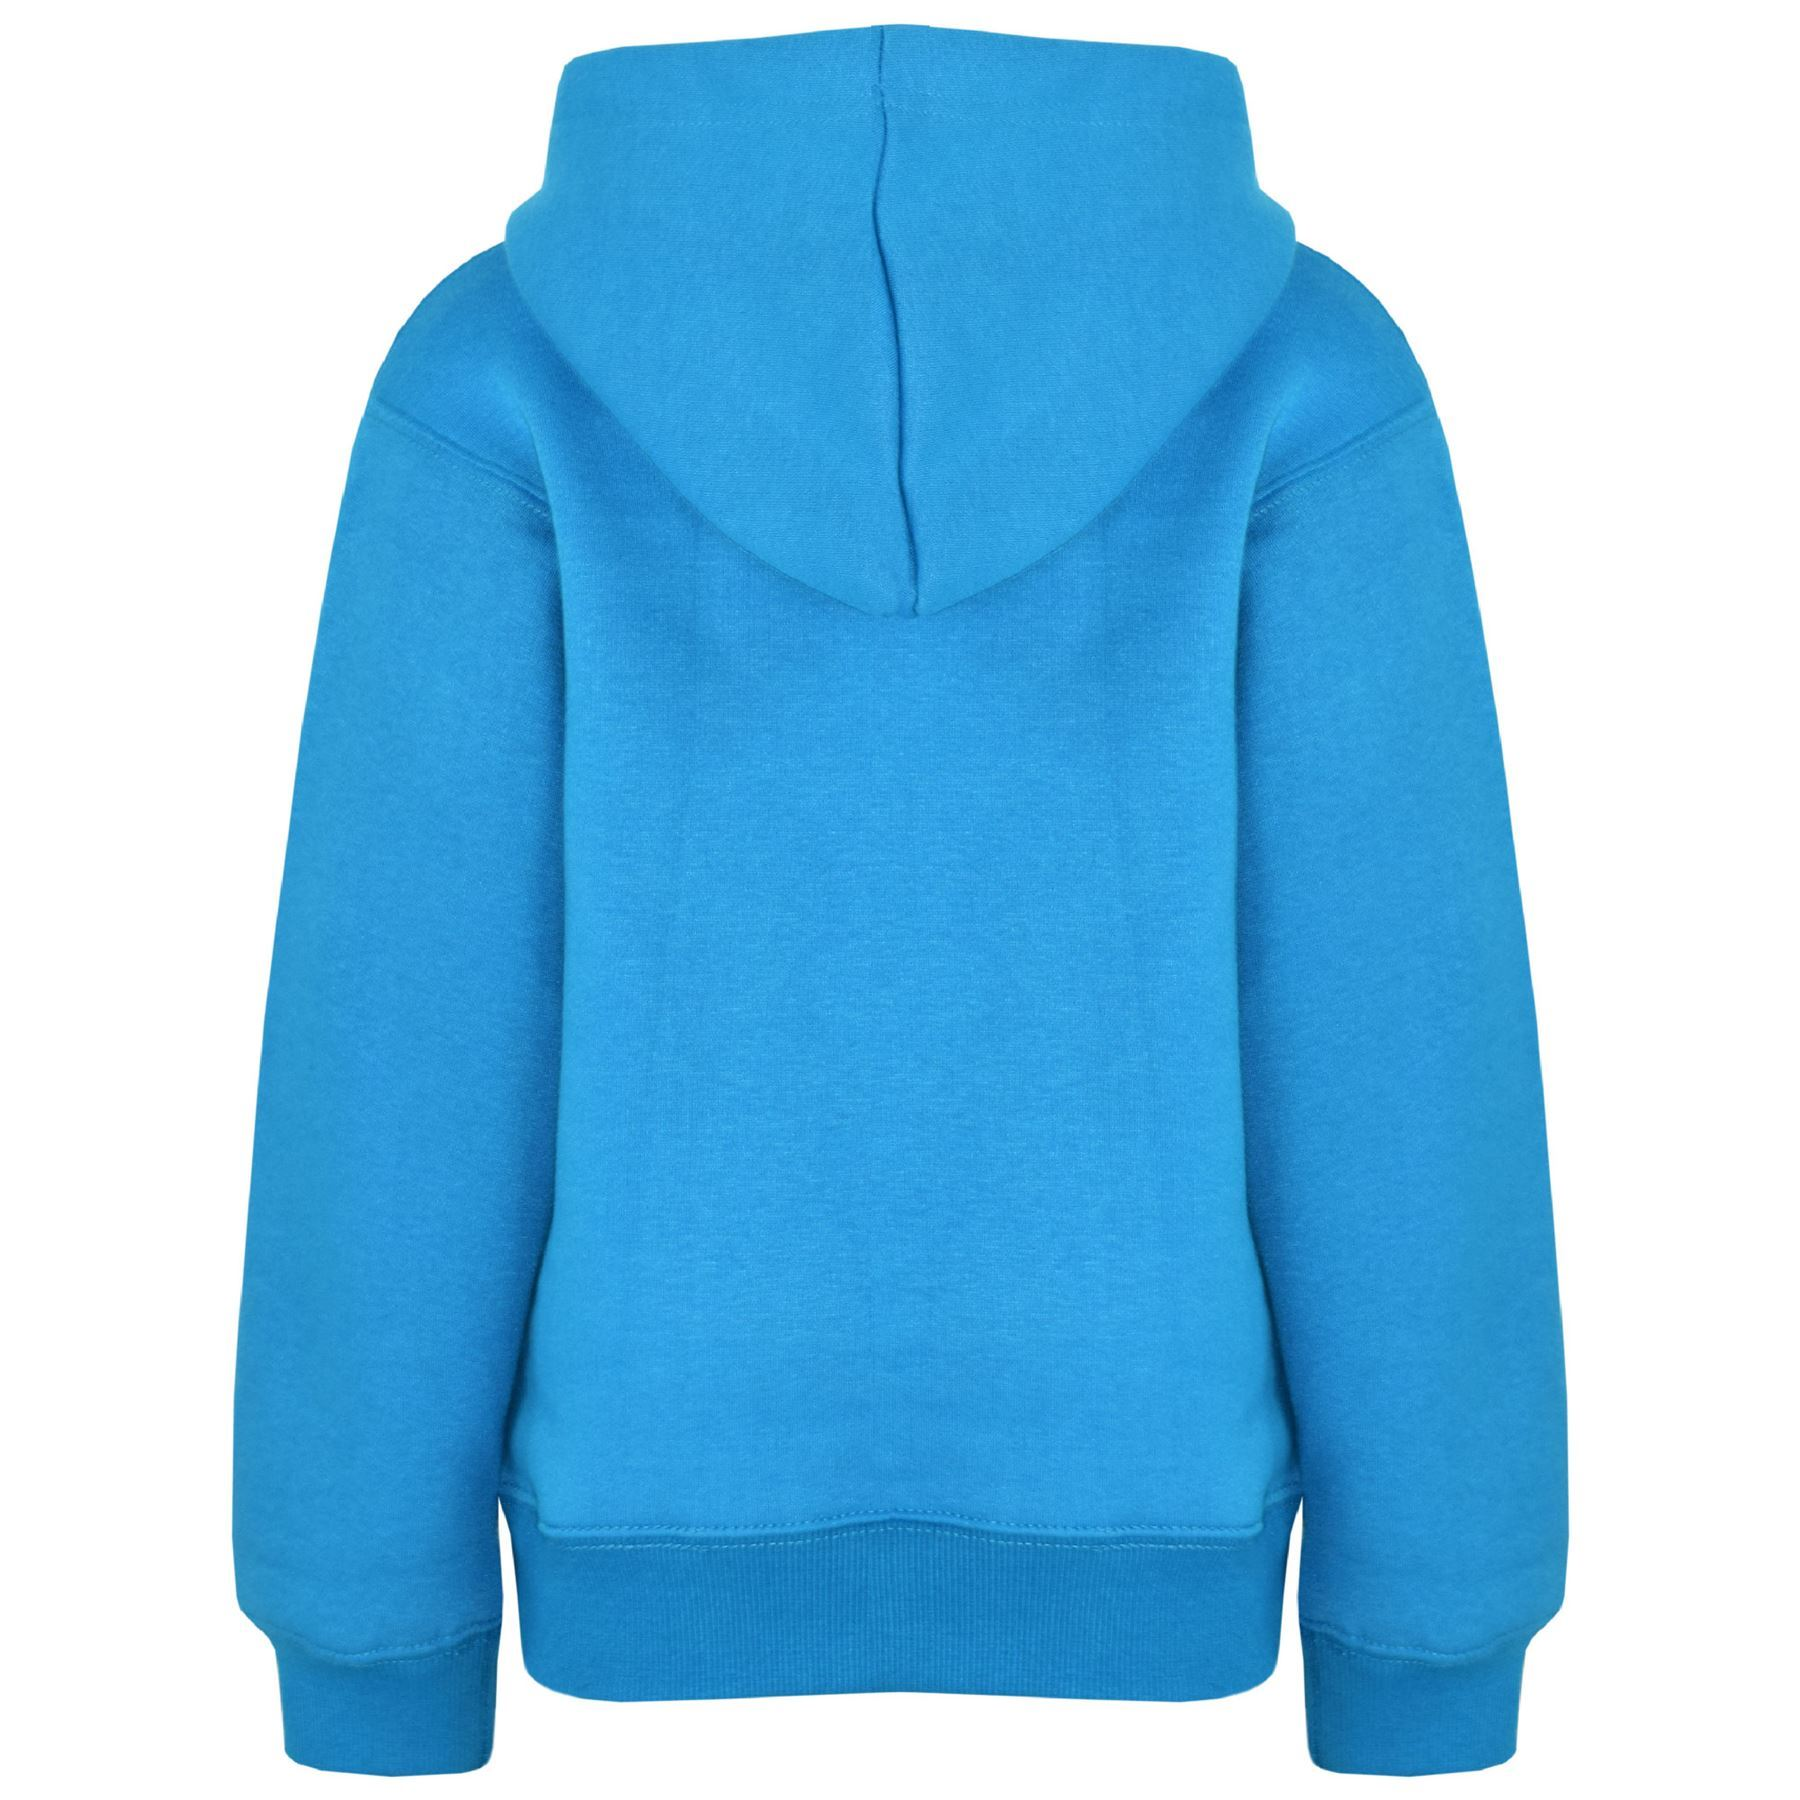 Kids Girls Boys Sweat Shirt Tops Plain Blue Hooded Jumpers Hoodies Age 2-13 Year